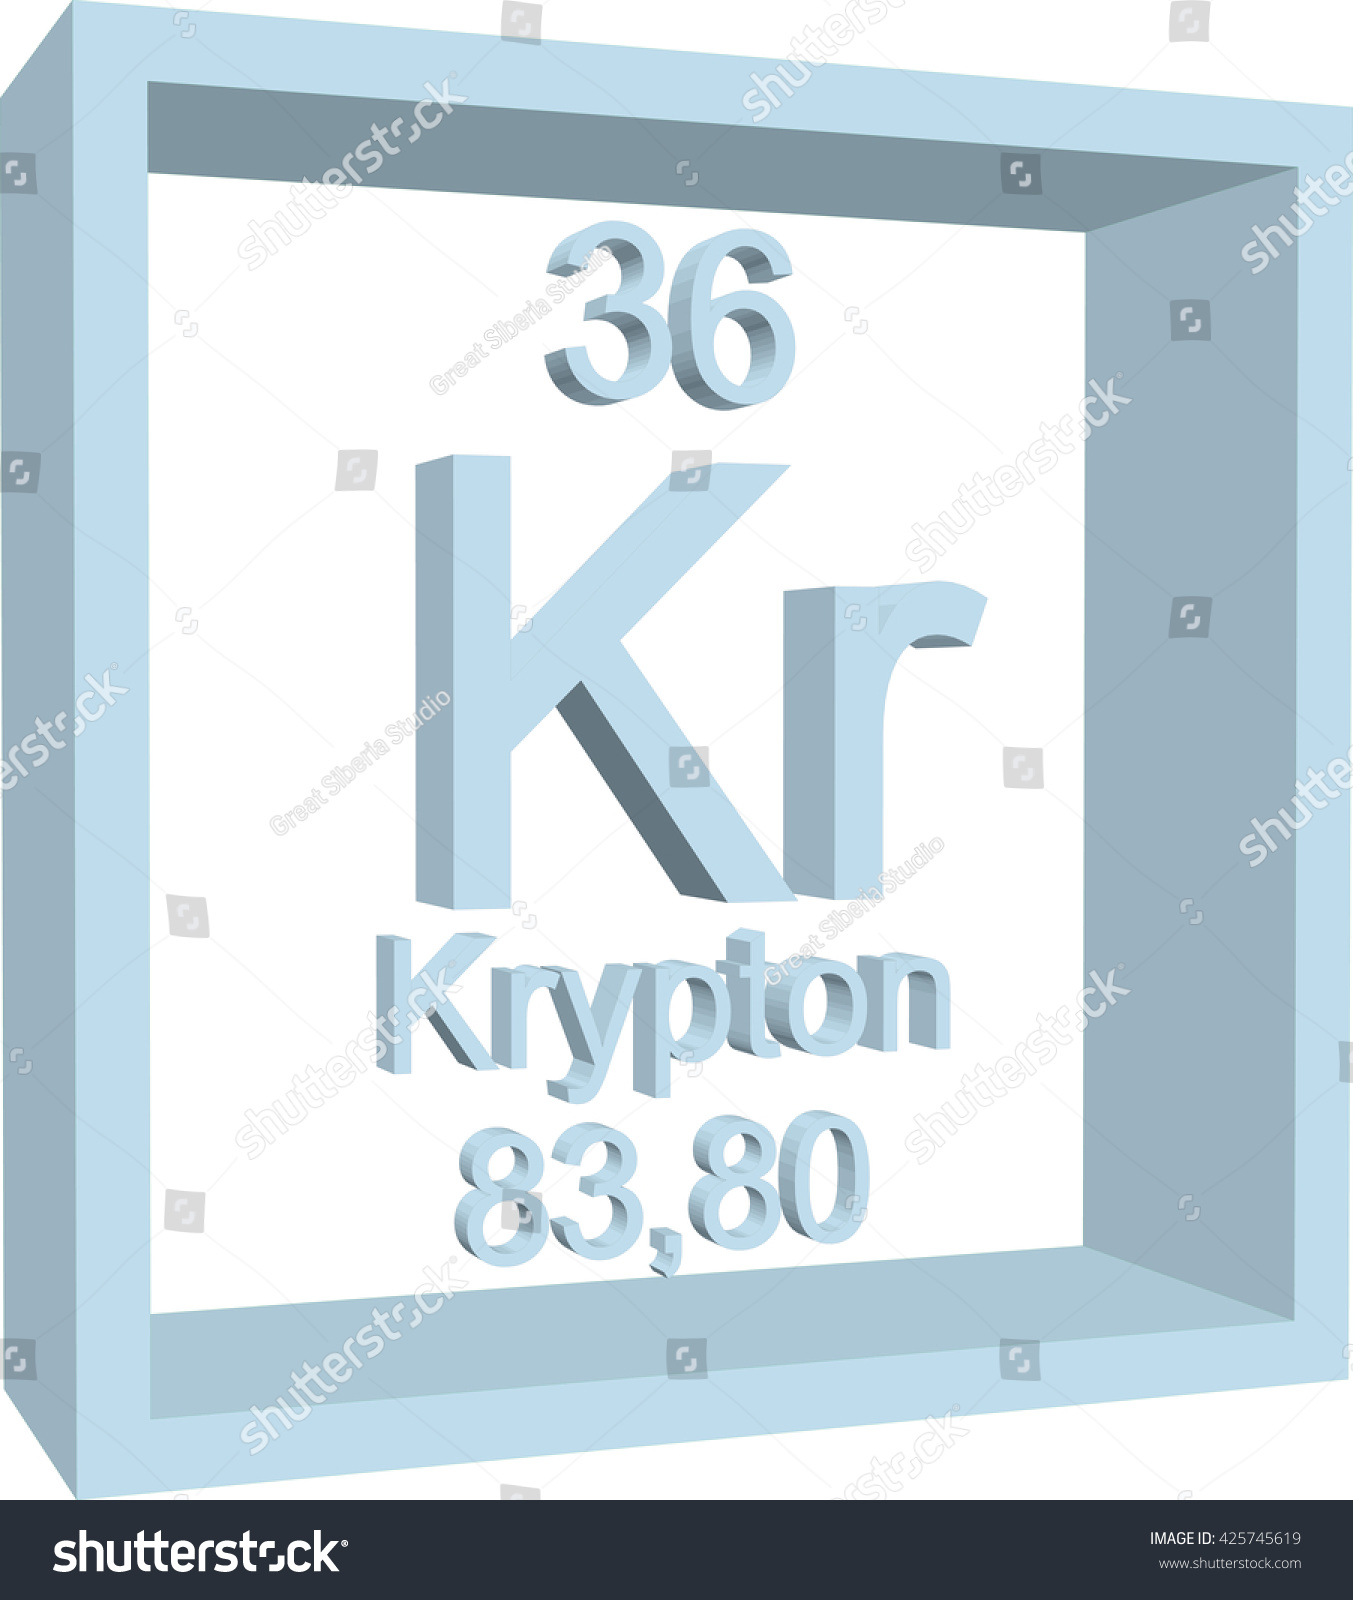 Periodic table elements krypton stock vector 425745619 shutterstock urtaz Choice Image